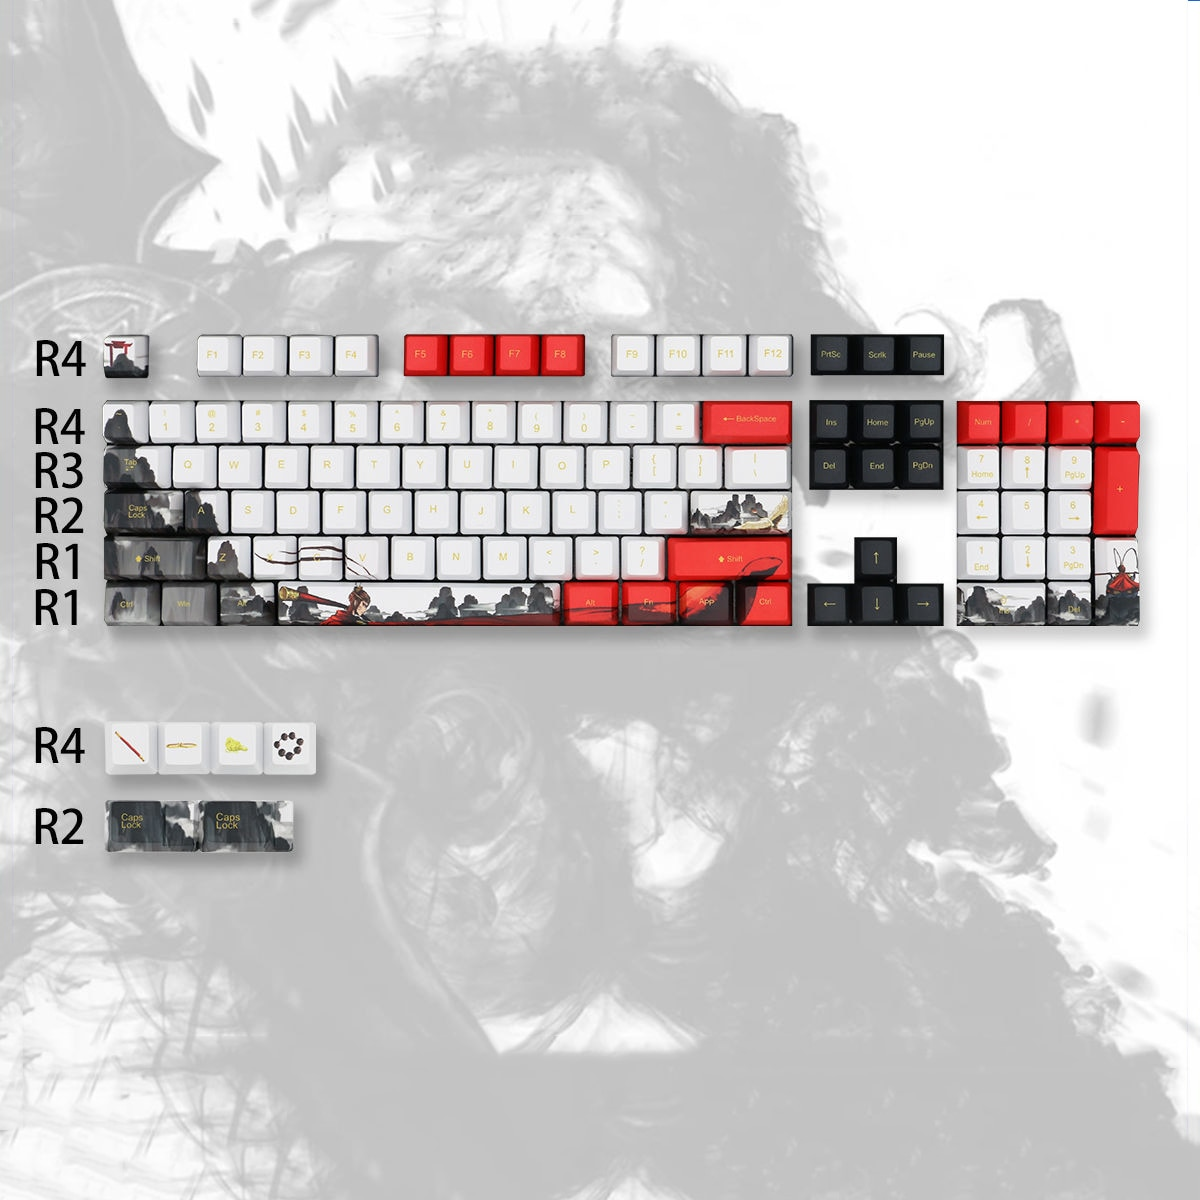 110-key Journey To The West Monkey King Keycap PBT Five-sided Sublimation Cherry Height Mechanical Keyboard Keycap Cherry MX 104 enlarge